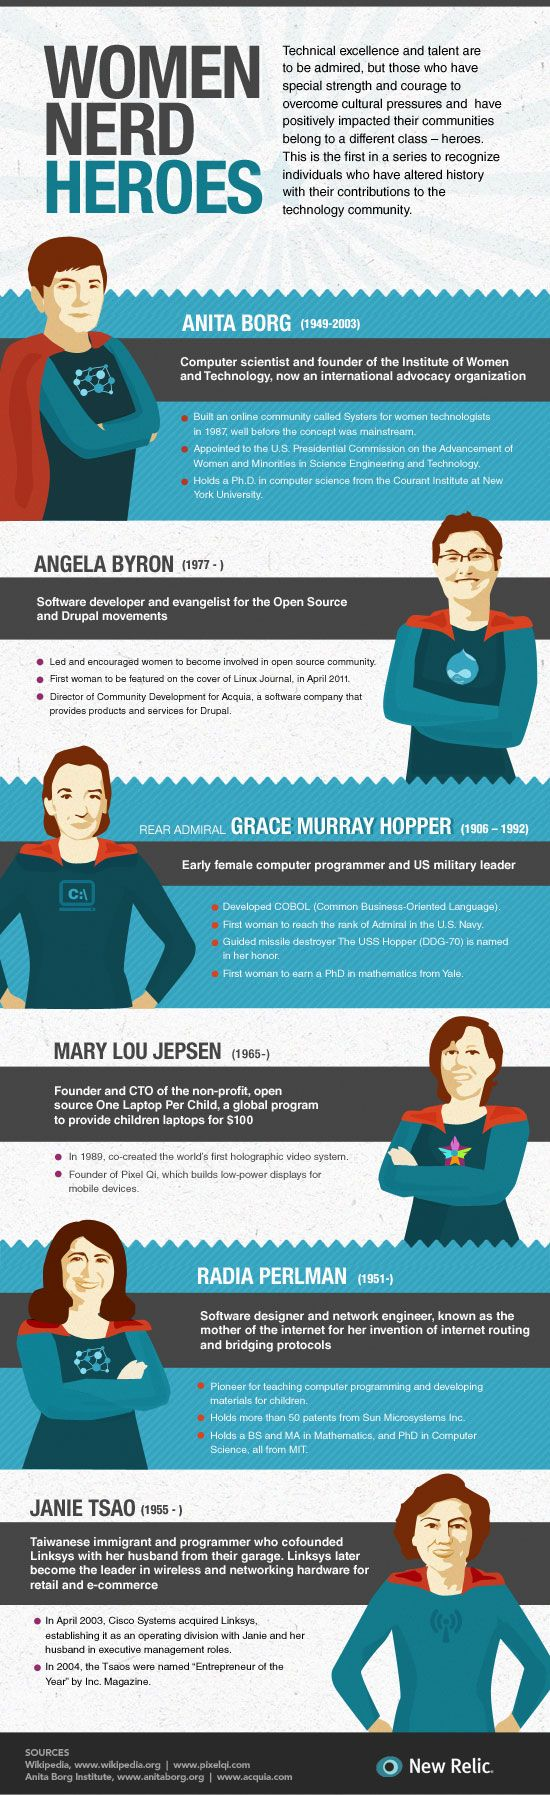 Infographic: Forget Wonder Woman — These Women Nerds Are Our Real Superheroes. v. New Relic http://blog.newrelic.com/2012/12/20/infographic-forget-wonder-woman-these-women-nerds-are-our-real-superheroes/